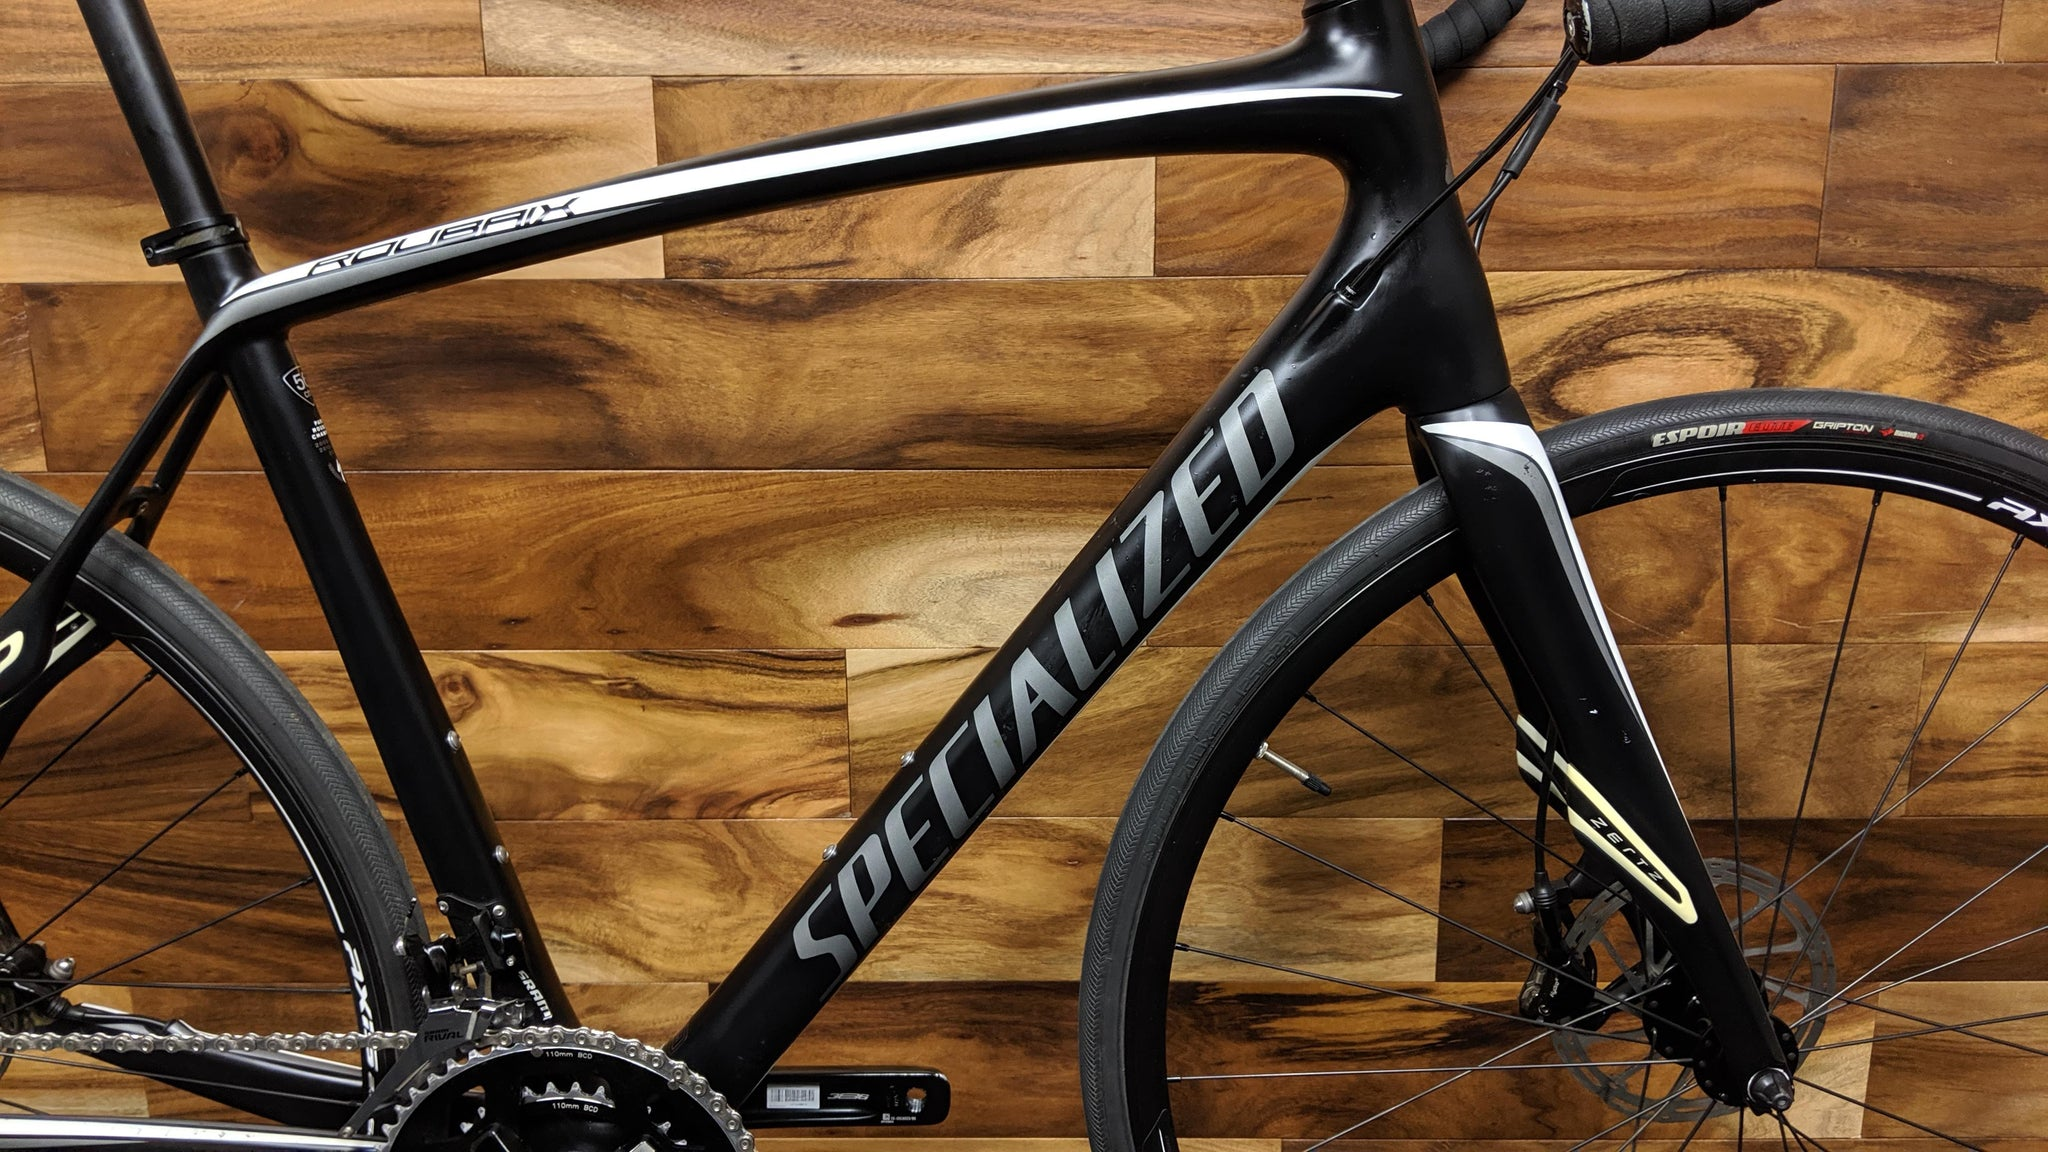 2016 SPECIALIZED ROUBAIX SL4 ELITE DISC CARBON